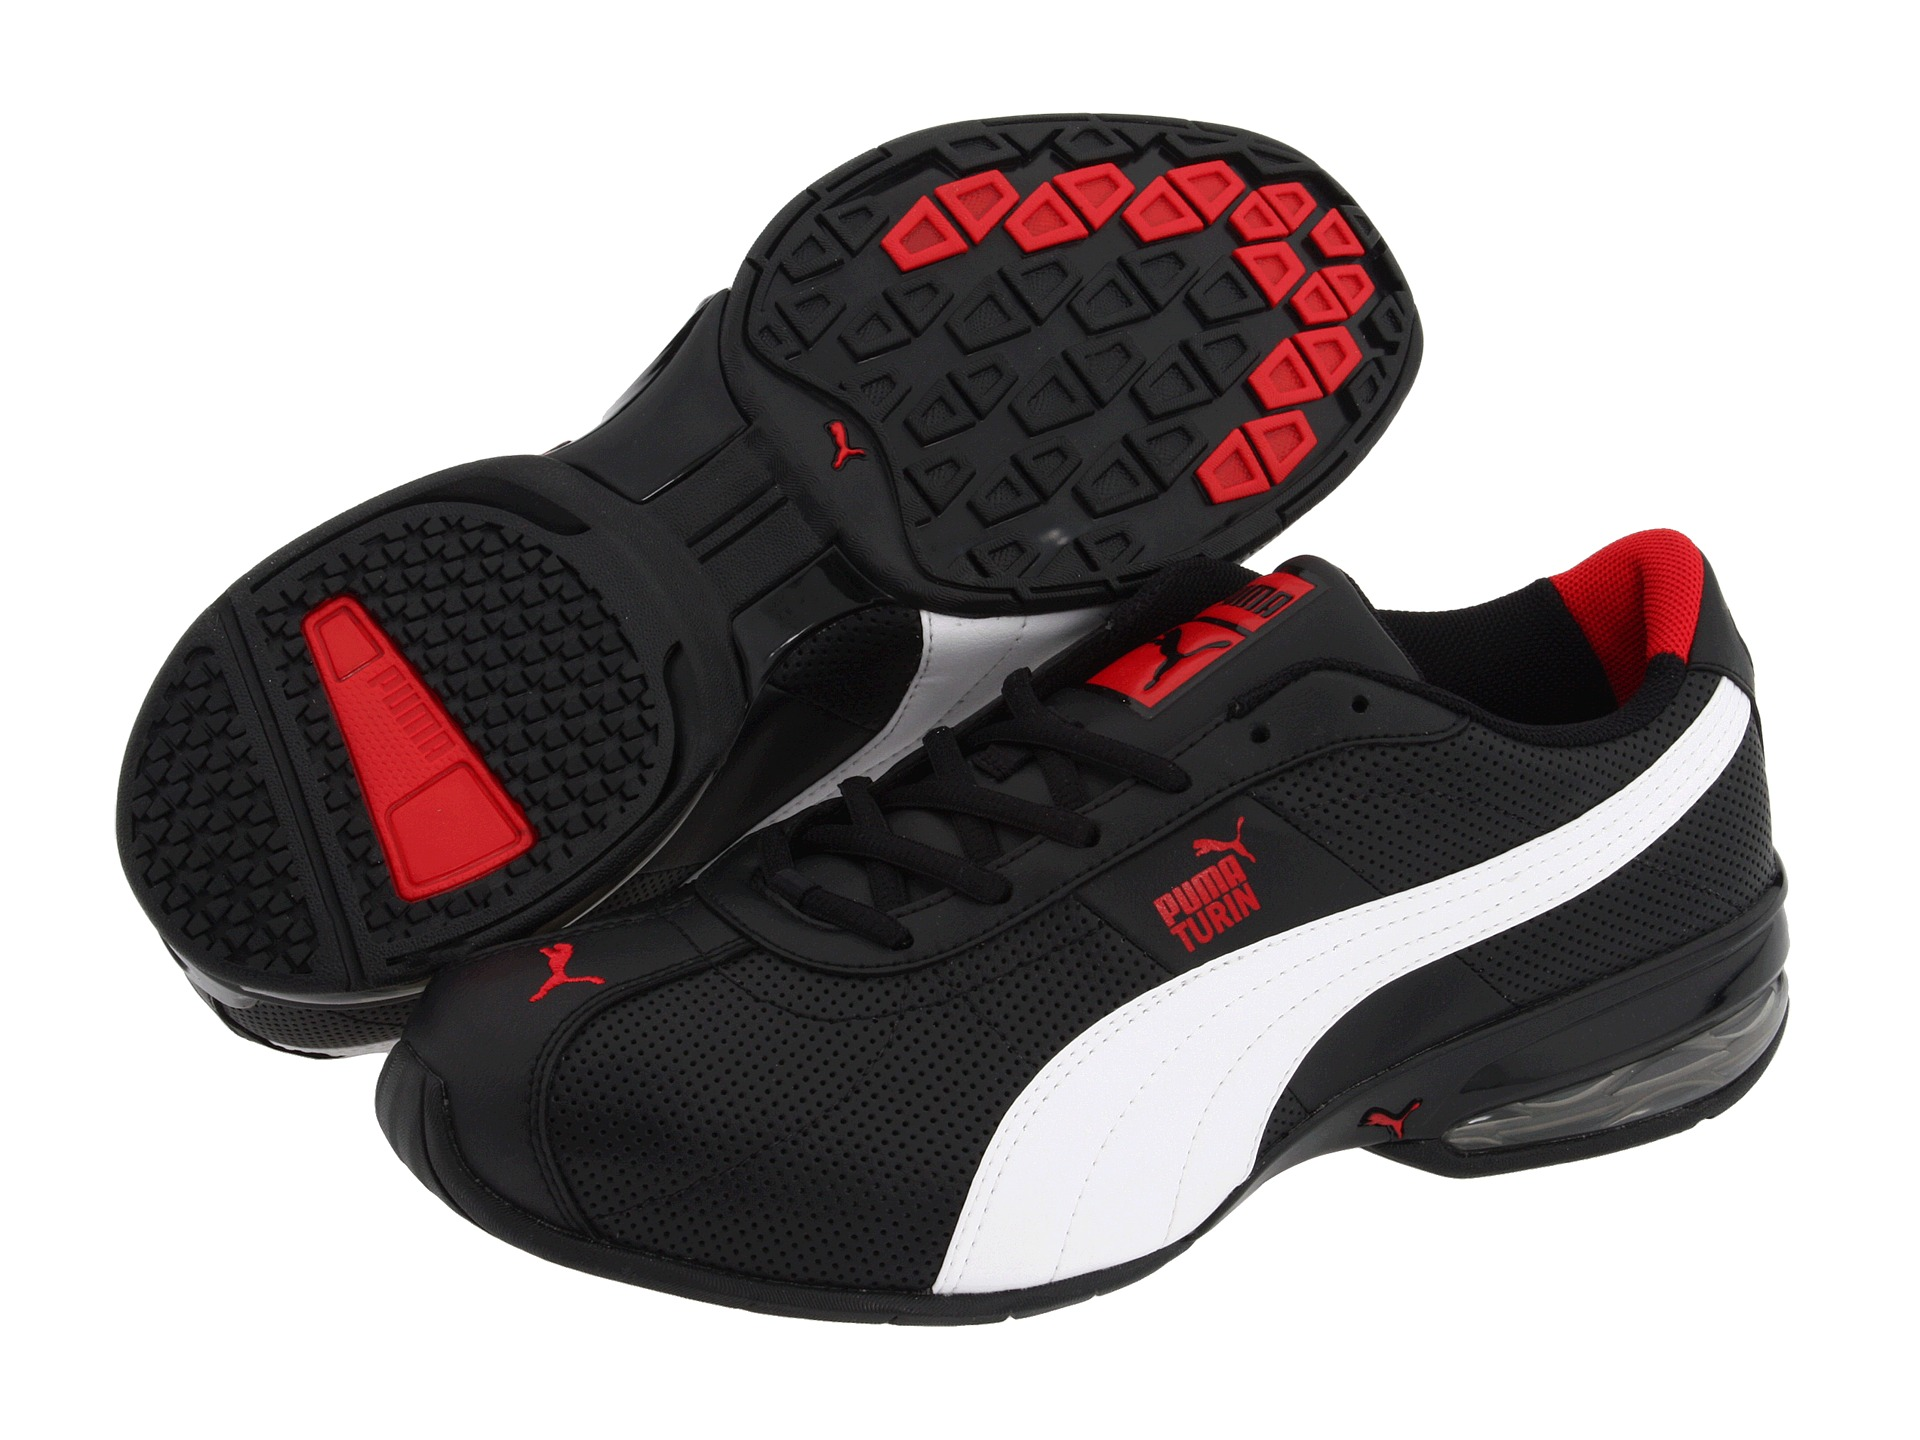 Super Sale Puma Cell Turin Perf Athletic AMP Crossfit